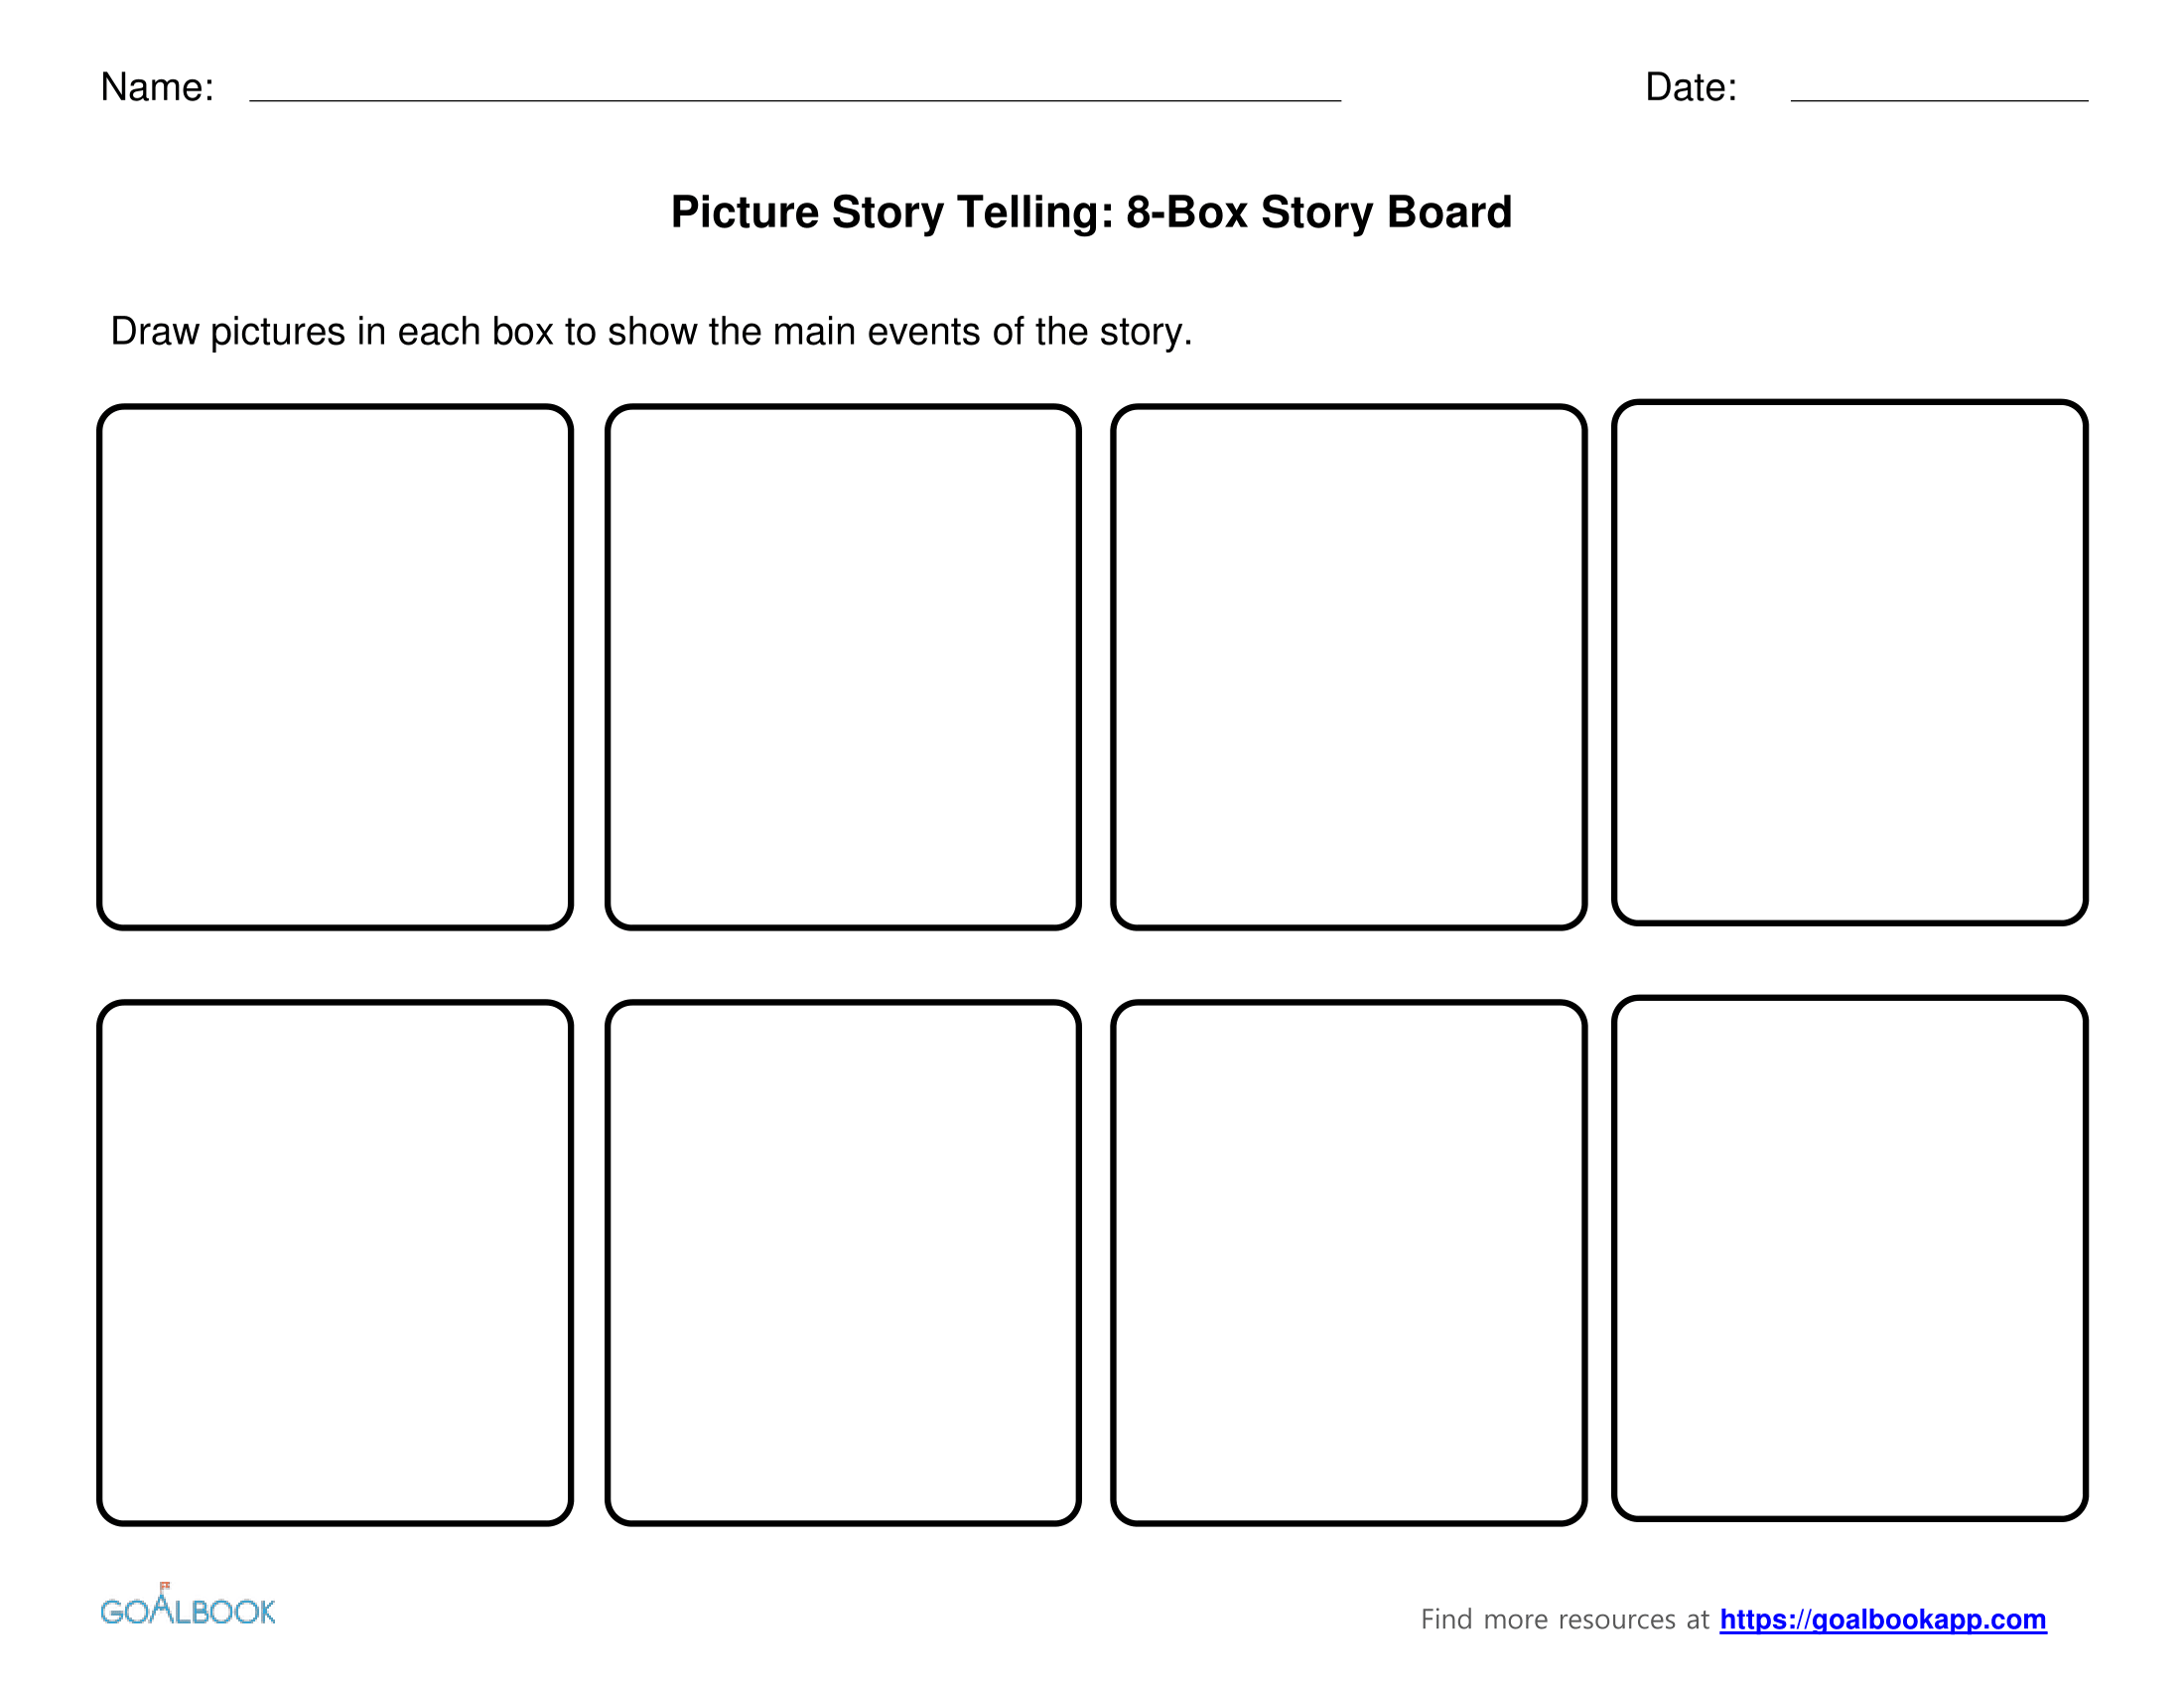 8-Box Story Boards